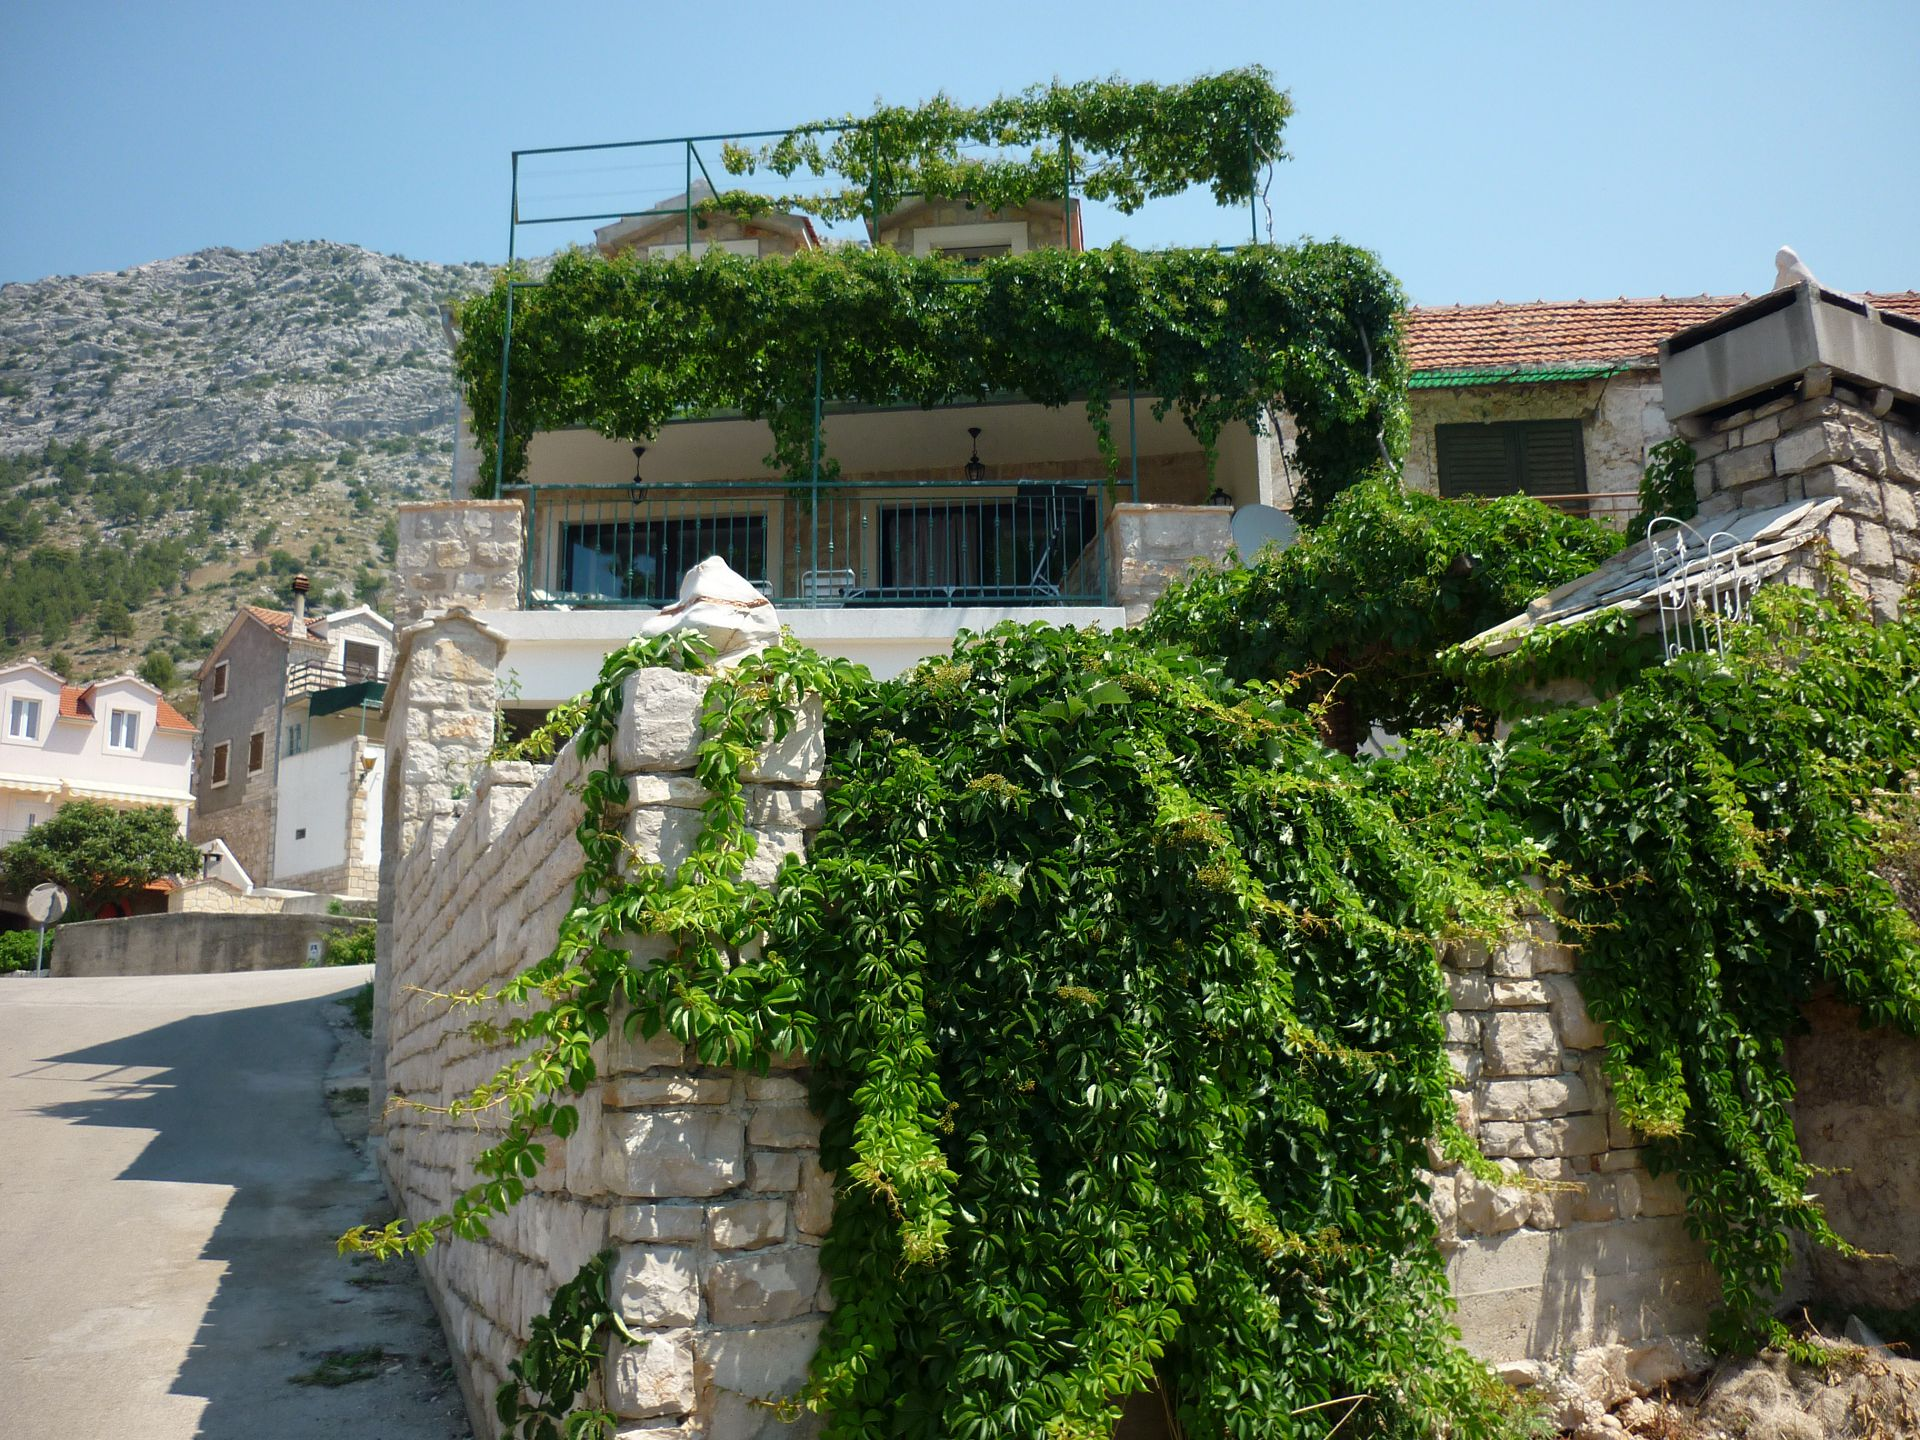 3777 - Ivan Dolac - Holiday houses, villas Croatia